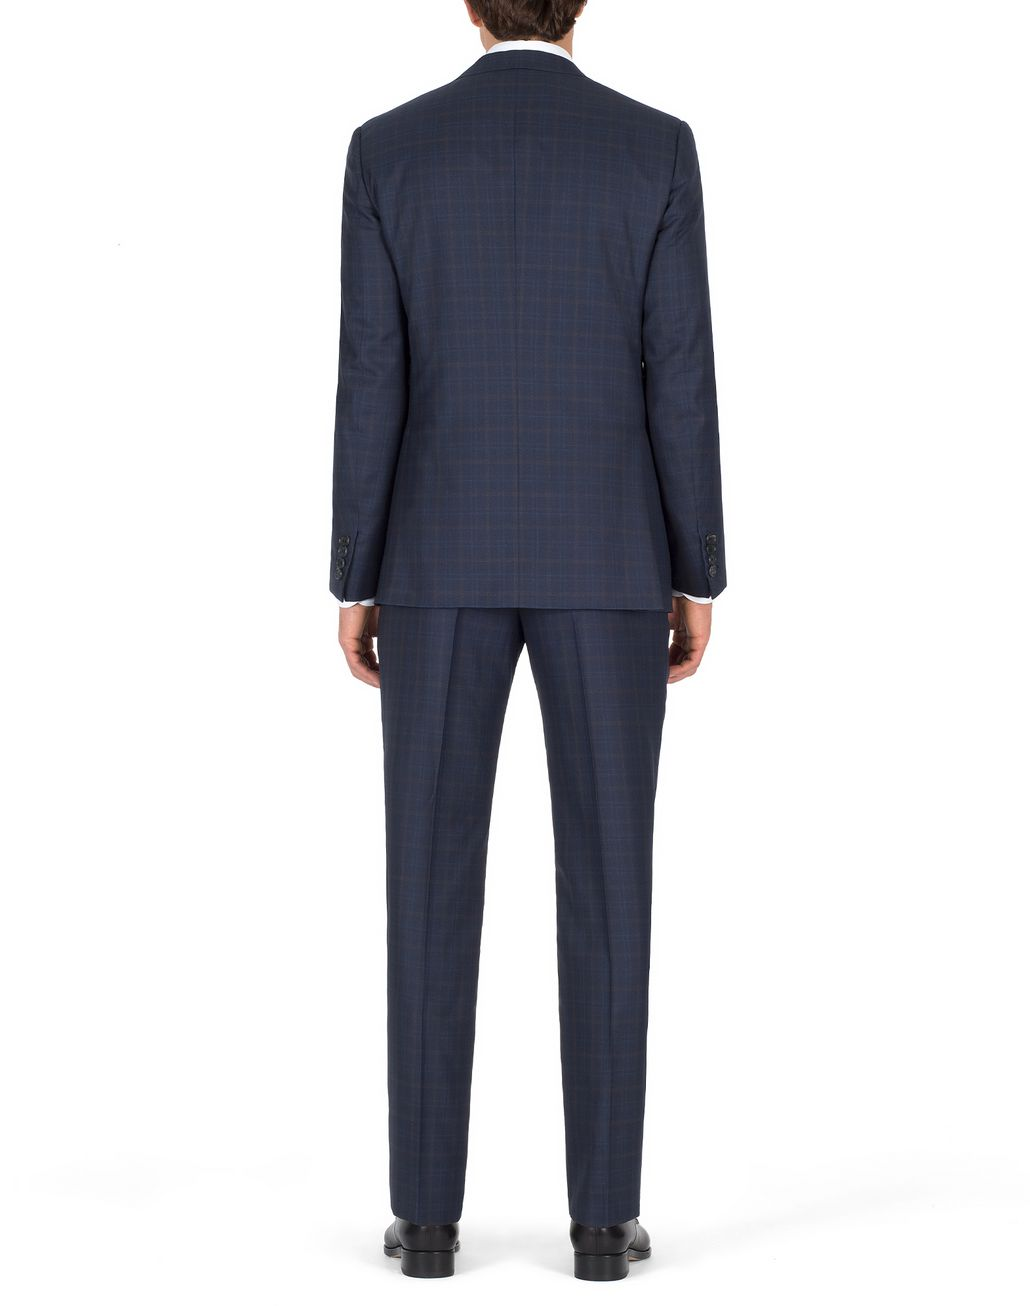 BRIONI Navy-Blue Subtle Check Brunico Suit Suits & Jackets U d